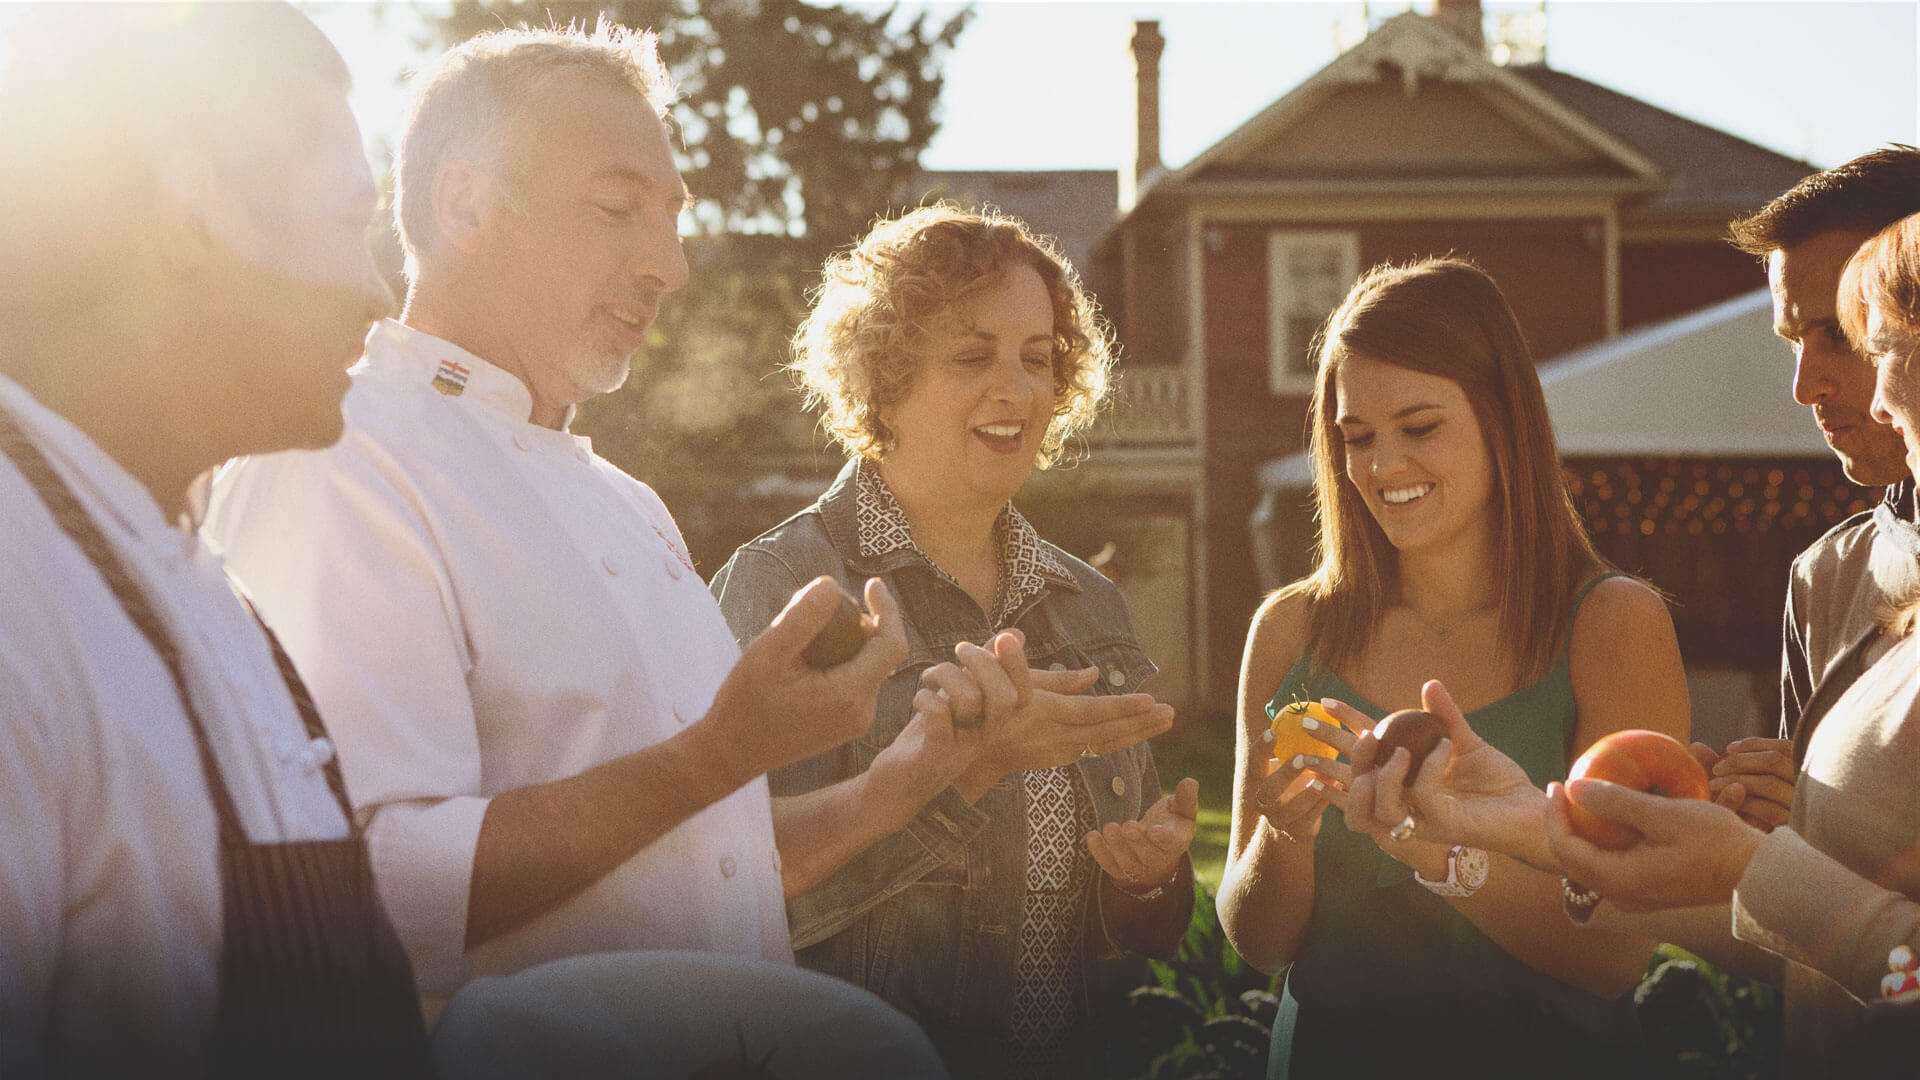 Calgary Food Tours ( a division of Alberta Food Tours Inc.)